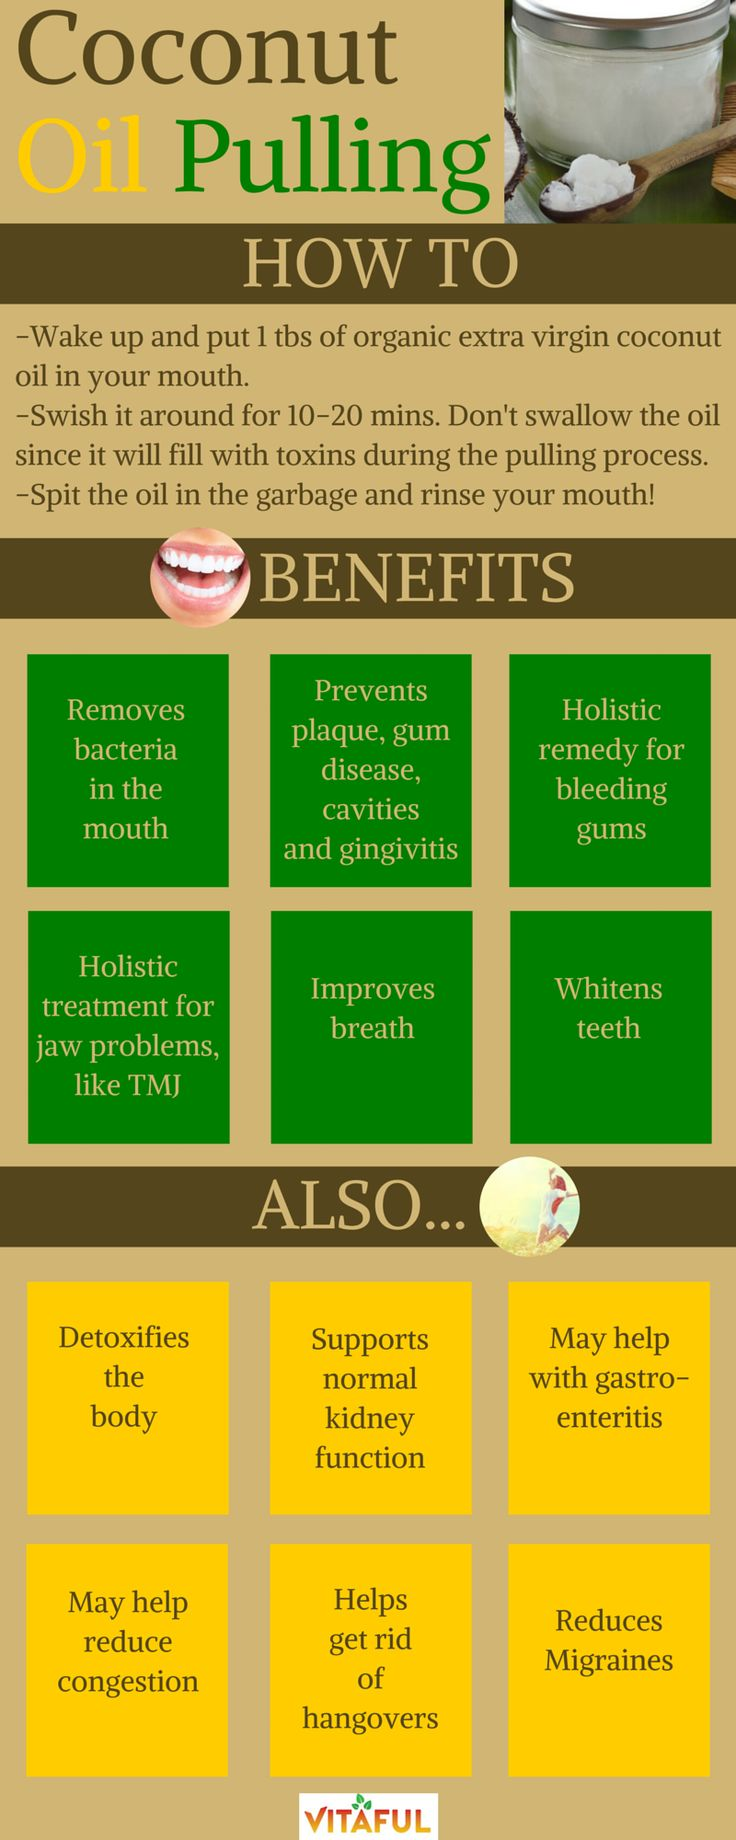 what is coconut oil pulling about how to and benefits